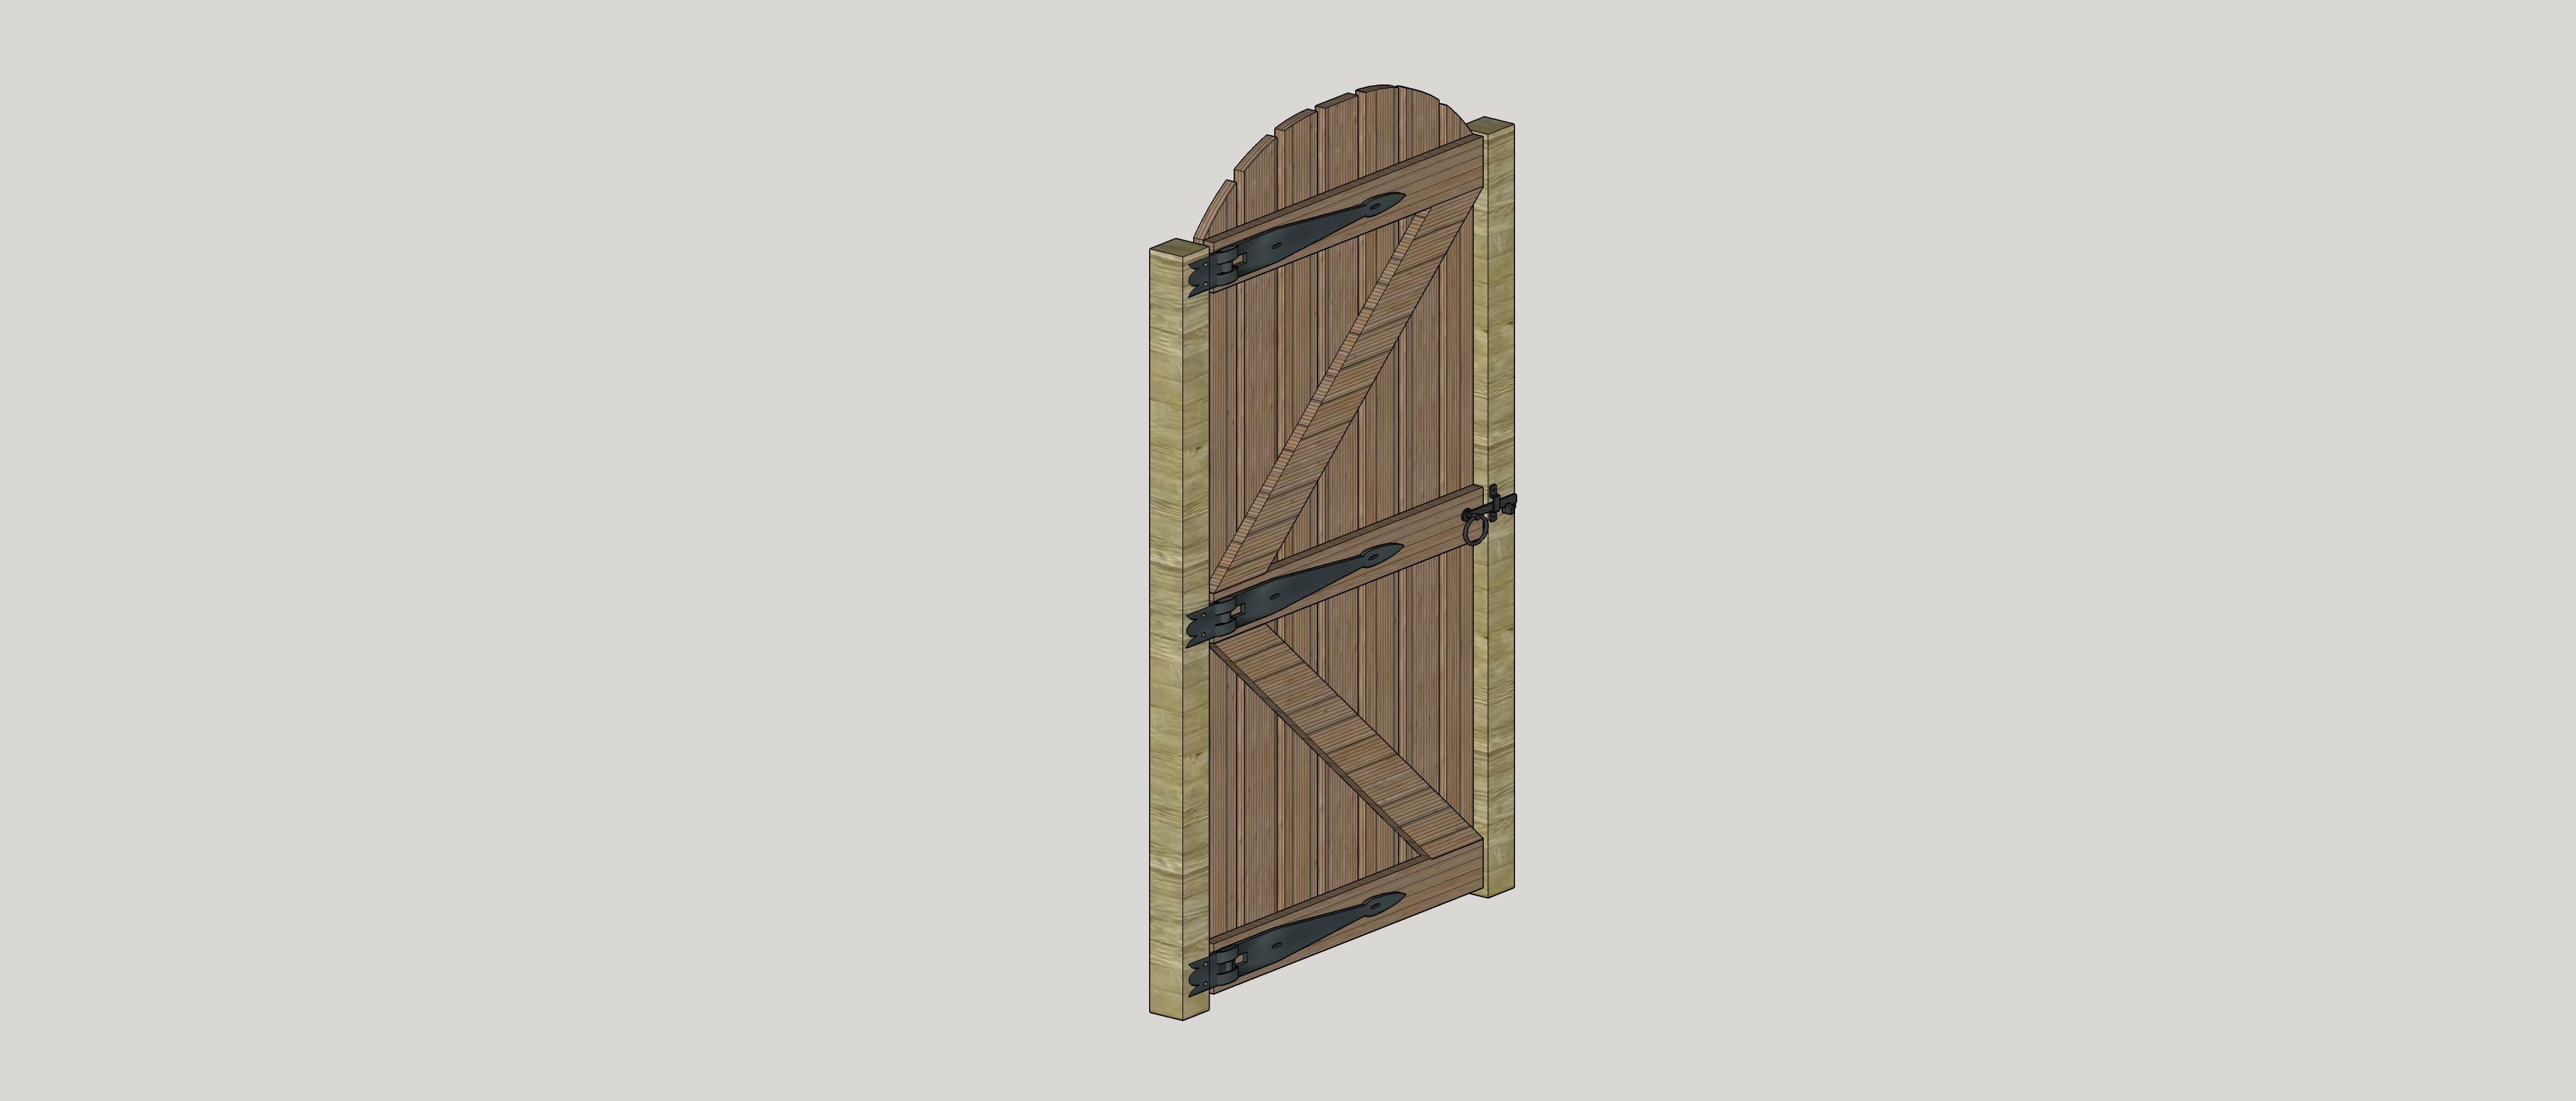 Bespoke Busby Gate Perspective 2D Graphic